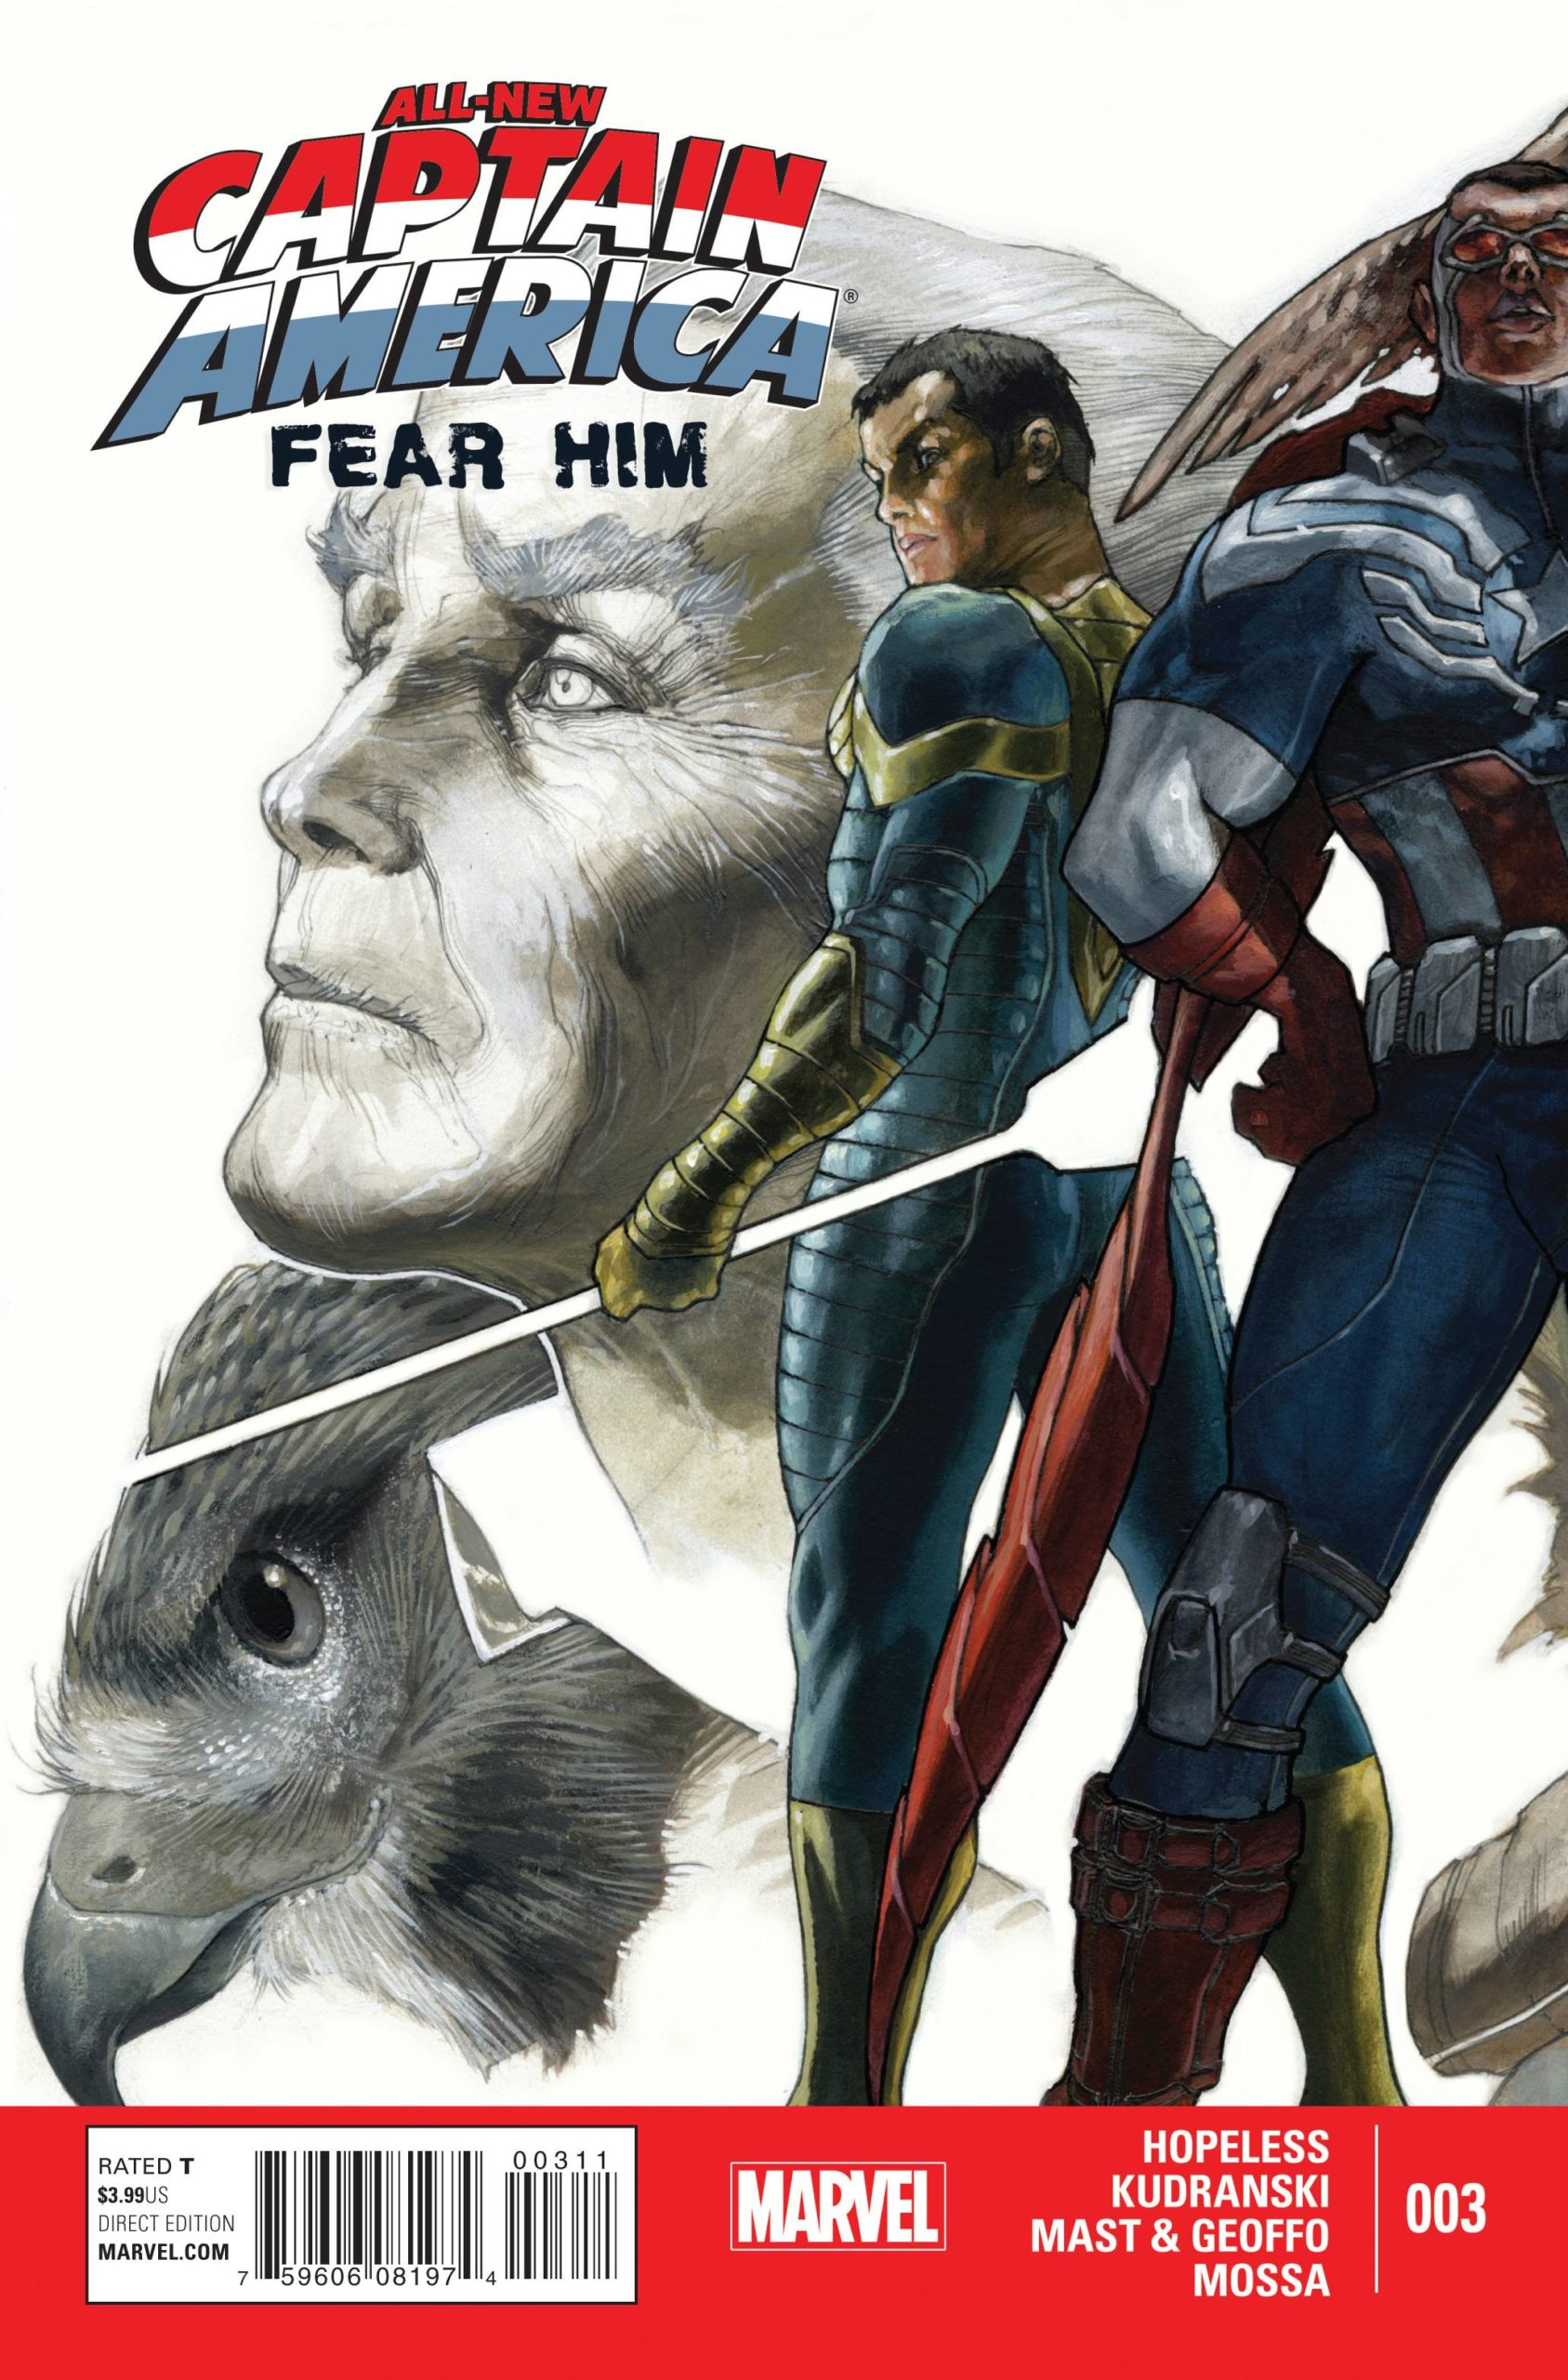 ALL NEW CAPTAIN AMERICA: FEAR HIM (MS 4)